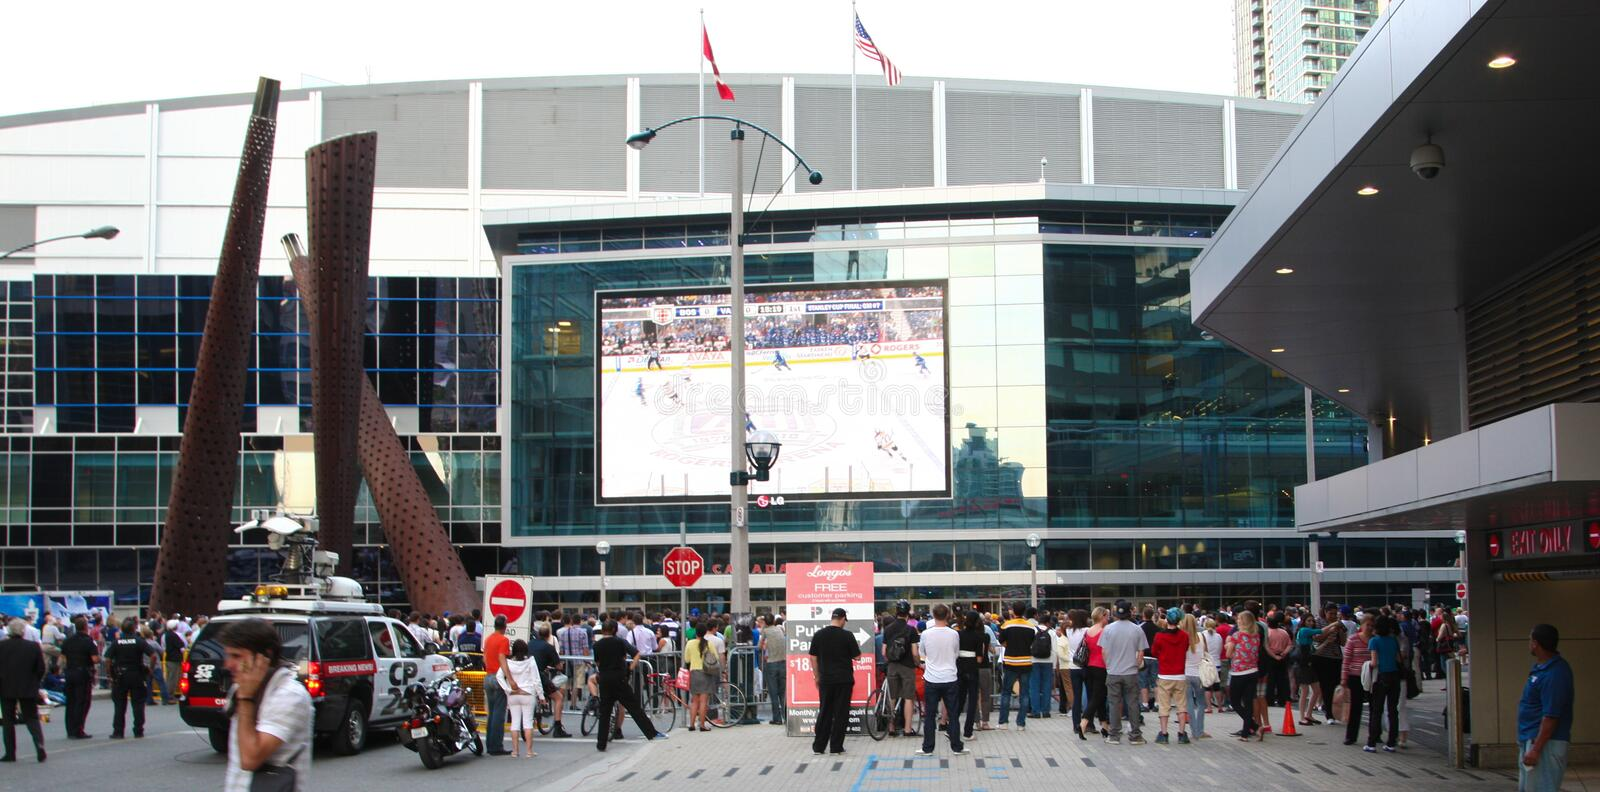 Toronto Maple Leaf hockey fans watching hockey game outdoor in downtown Toronto. Ontario Canada royalty free stock photos